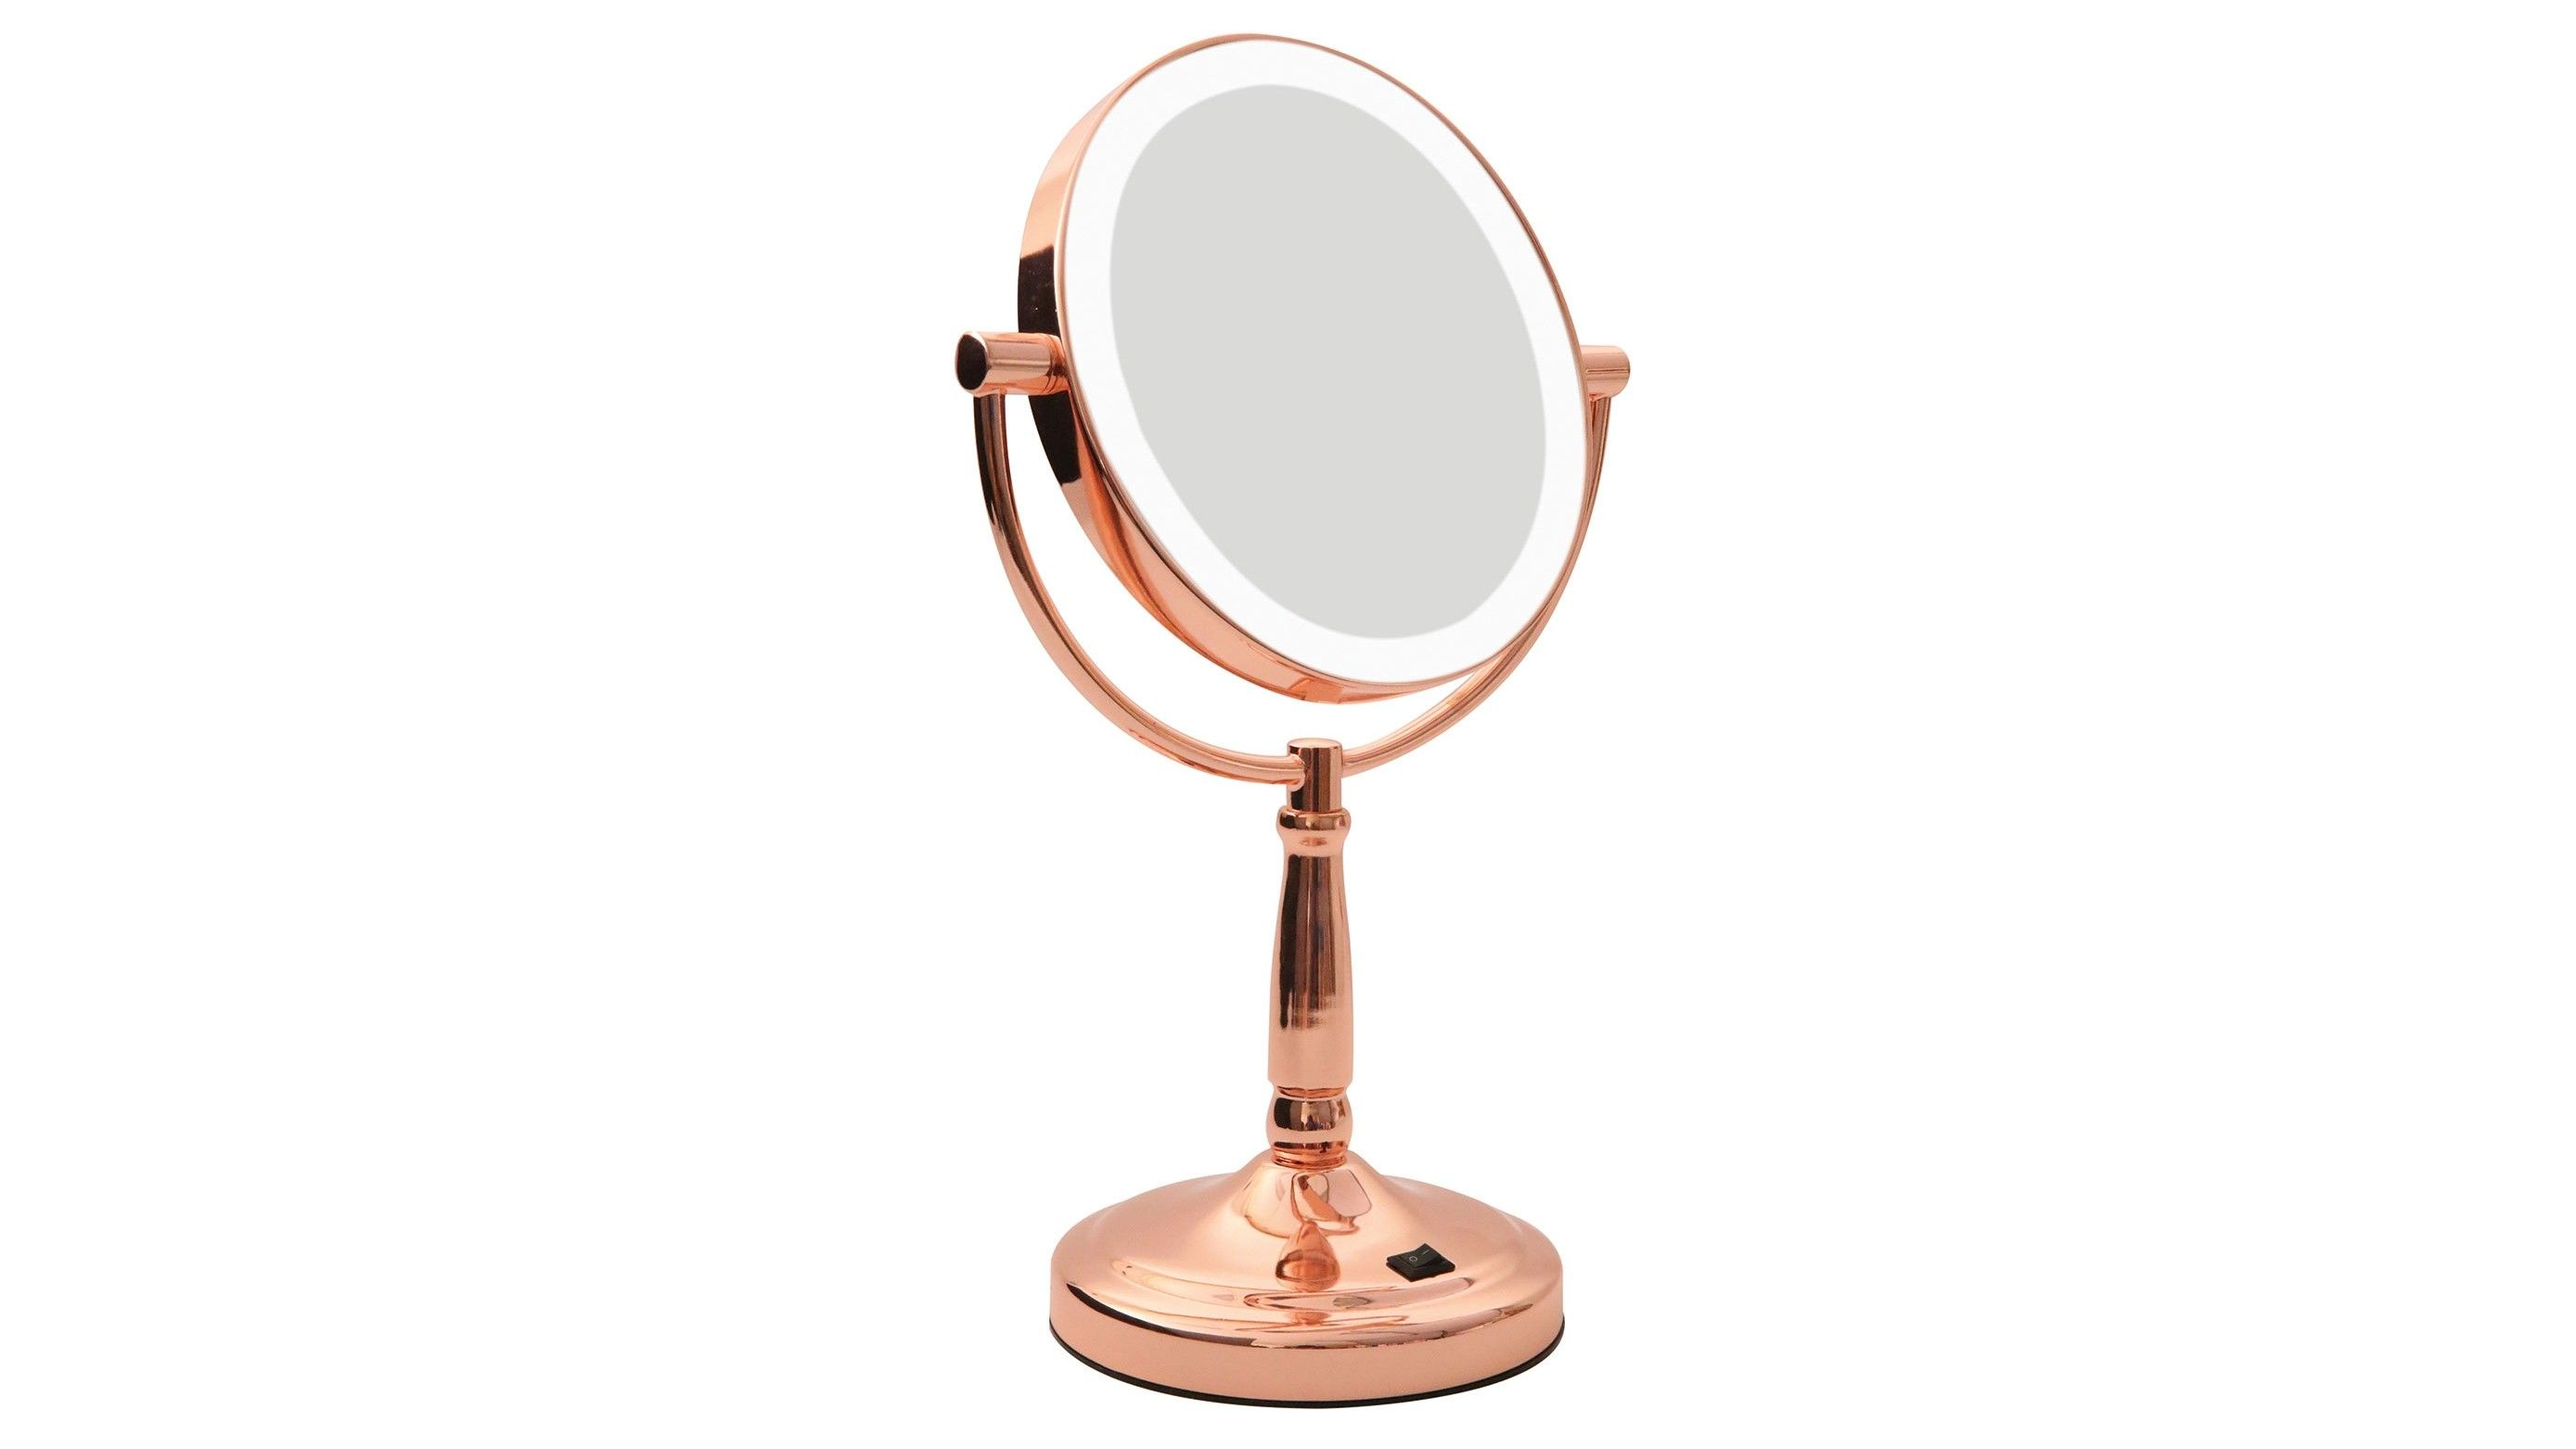 Homedics Led Vanity Mirror Rose Gold